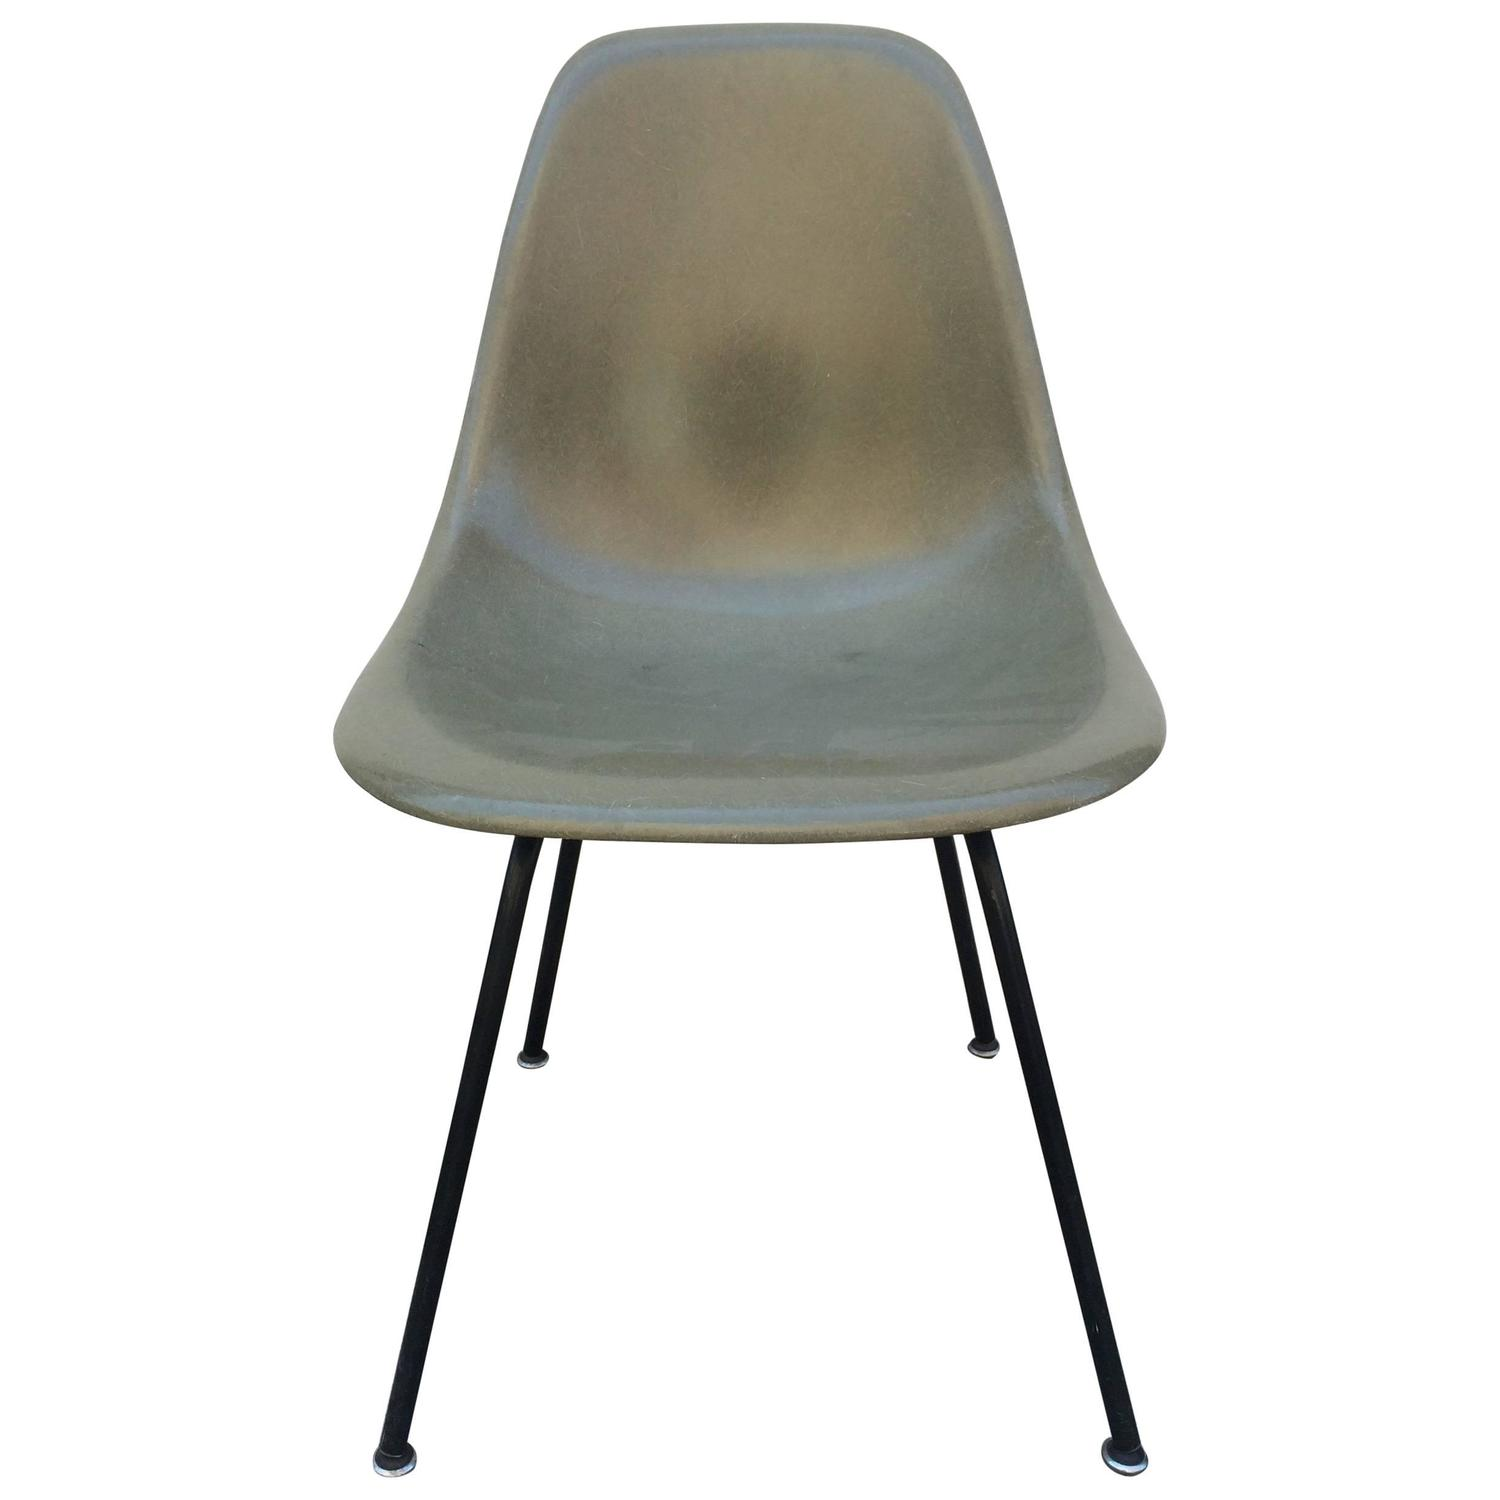 Eames Herman Miller Raw Umber Fiberglass Chair For Sale at